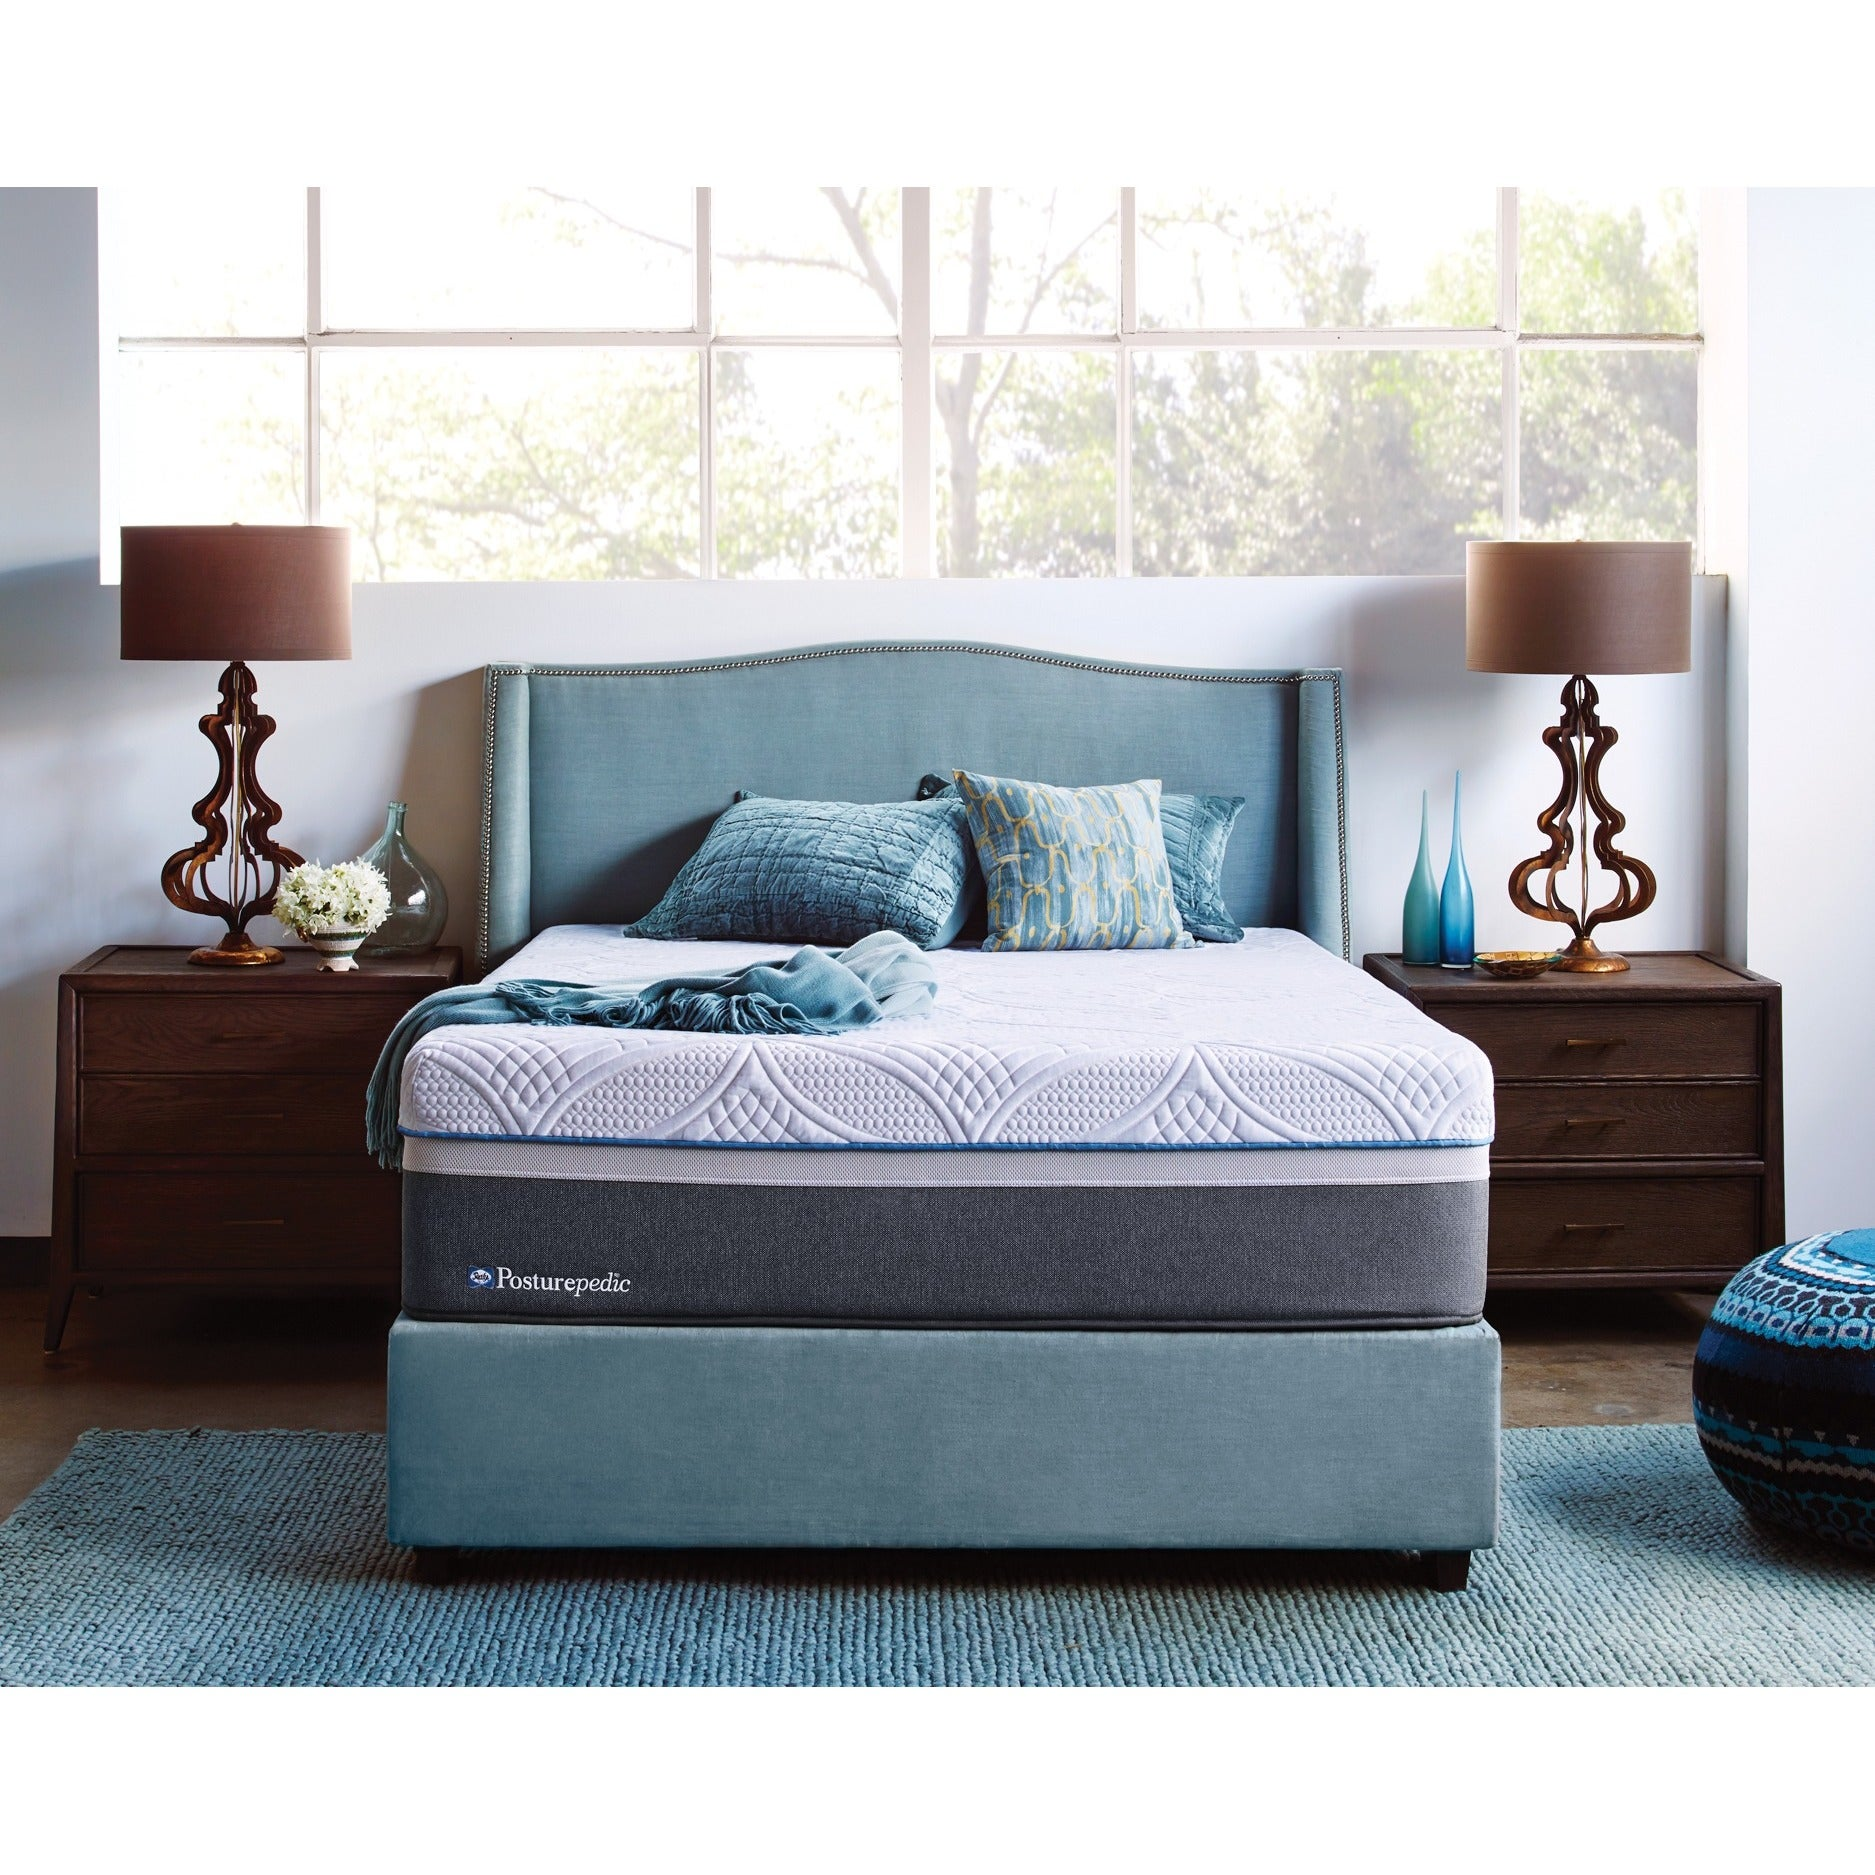 Sealy Posturepedic Hybrid Copper Plush King Size Mattress Free Shipping Today 12519483